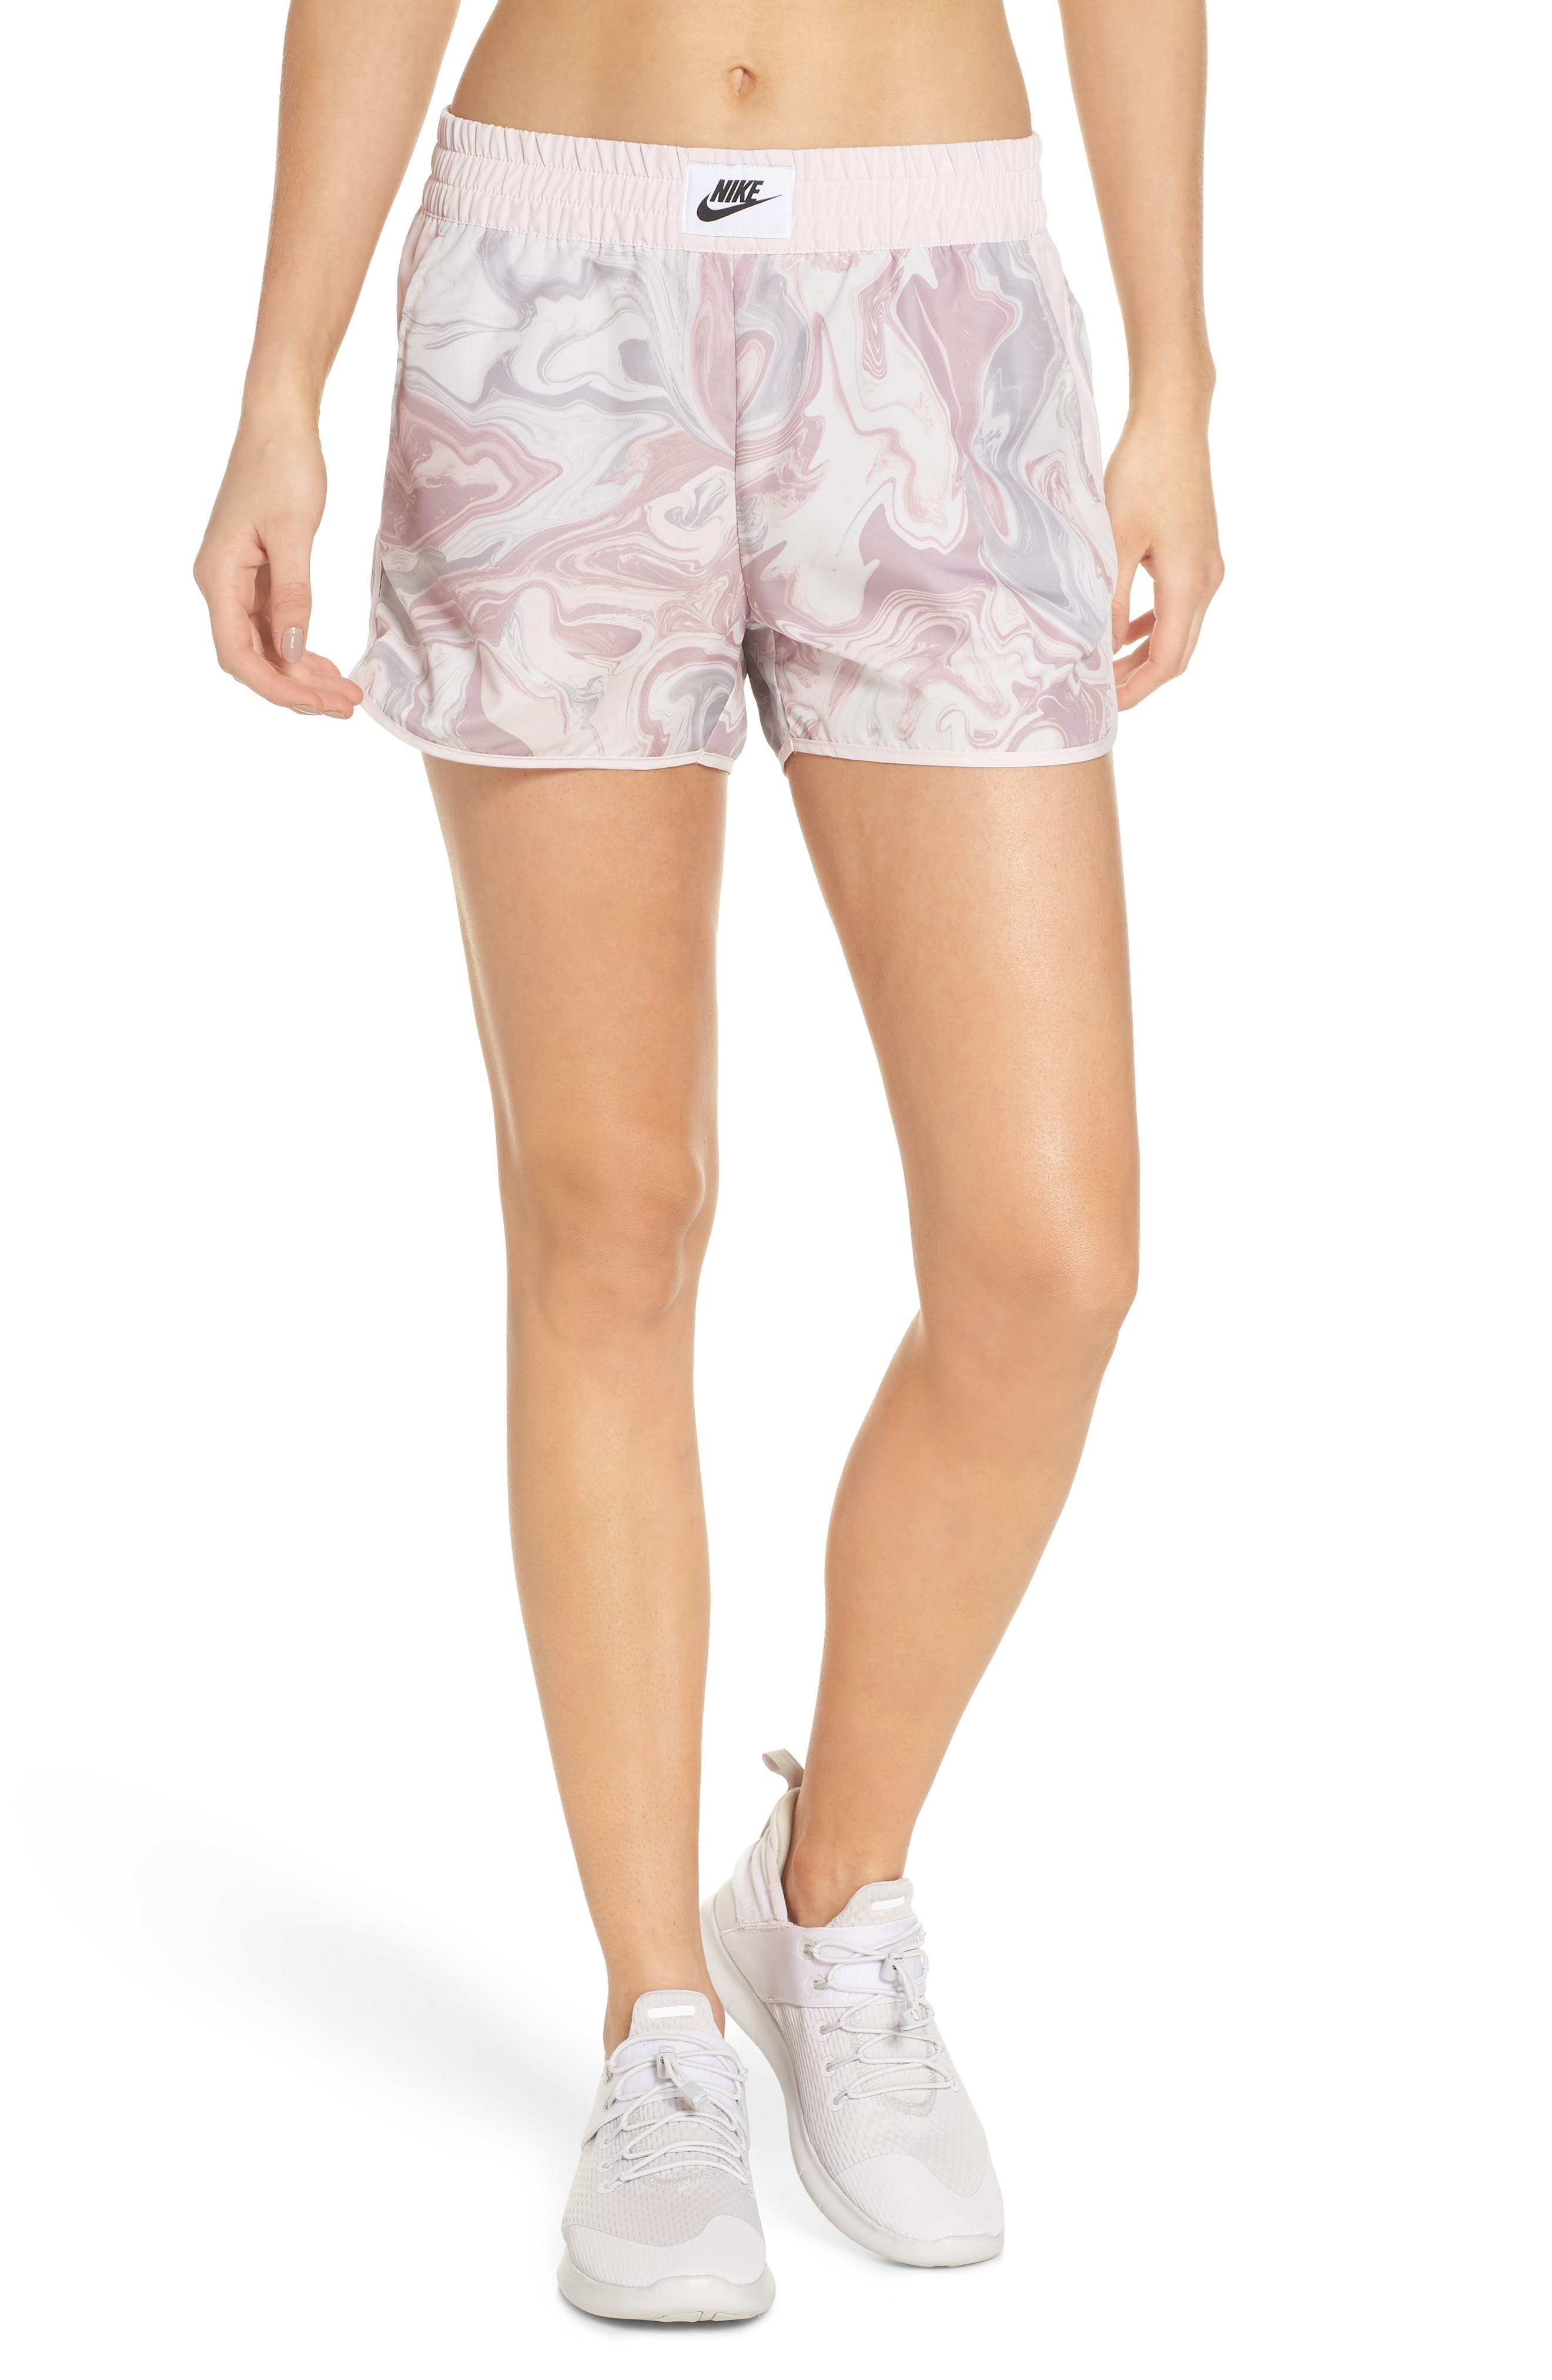 Sportswear Woven Shorts,                         Main,                         color, ELEMENTAL ROSE/ BARELY ROSE